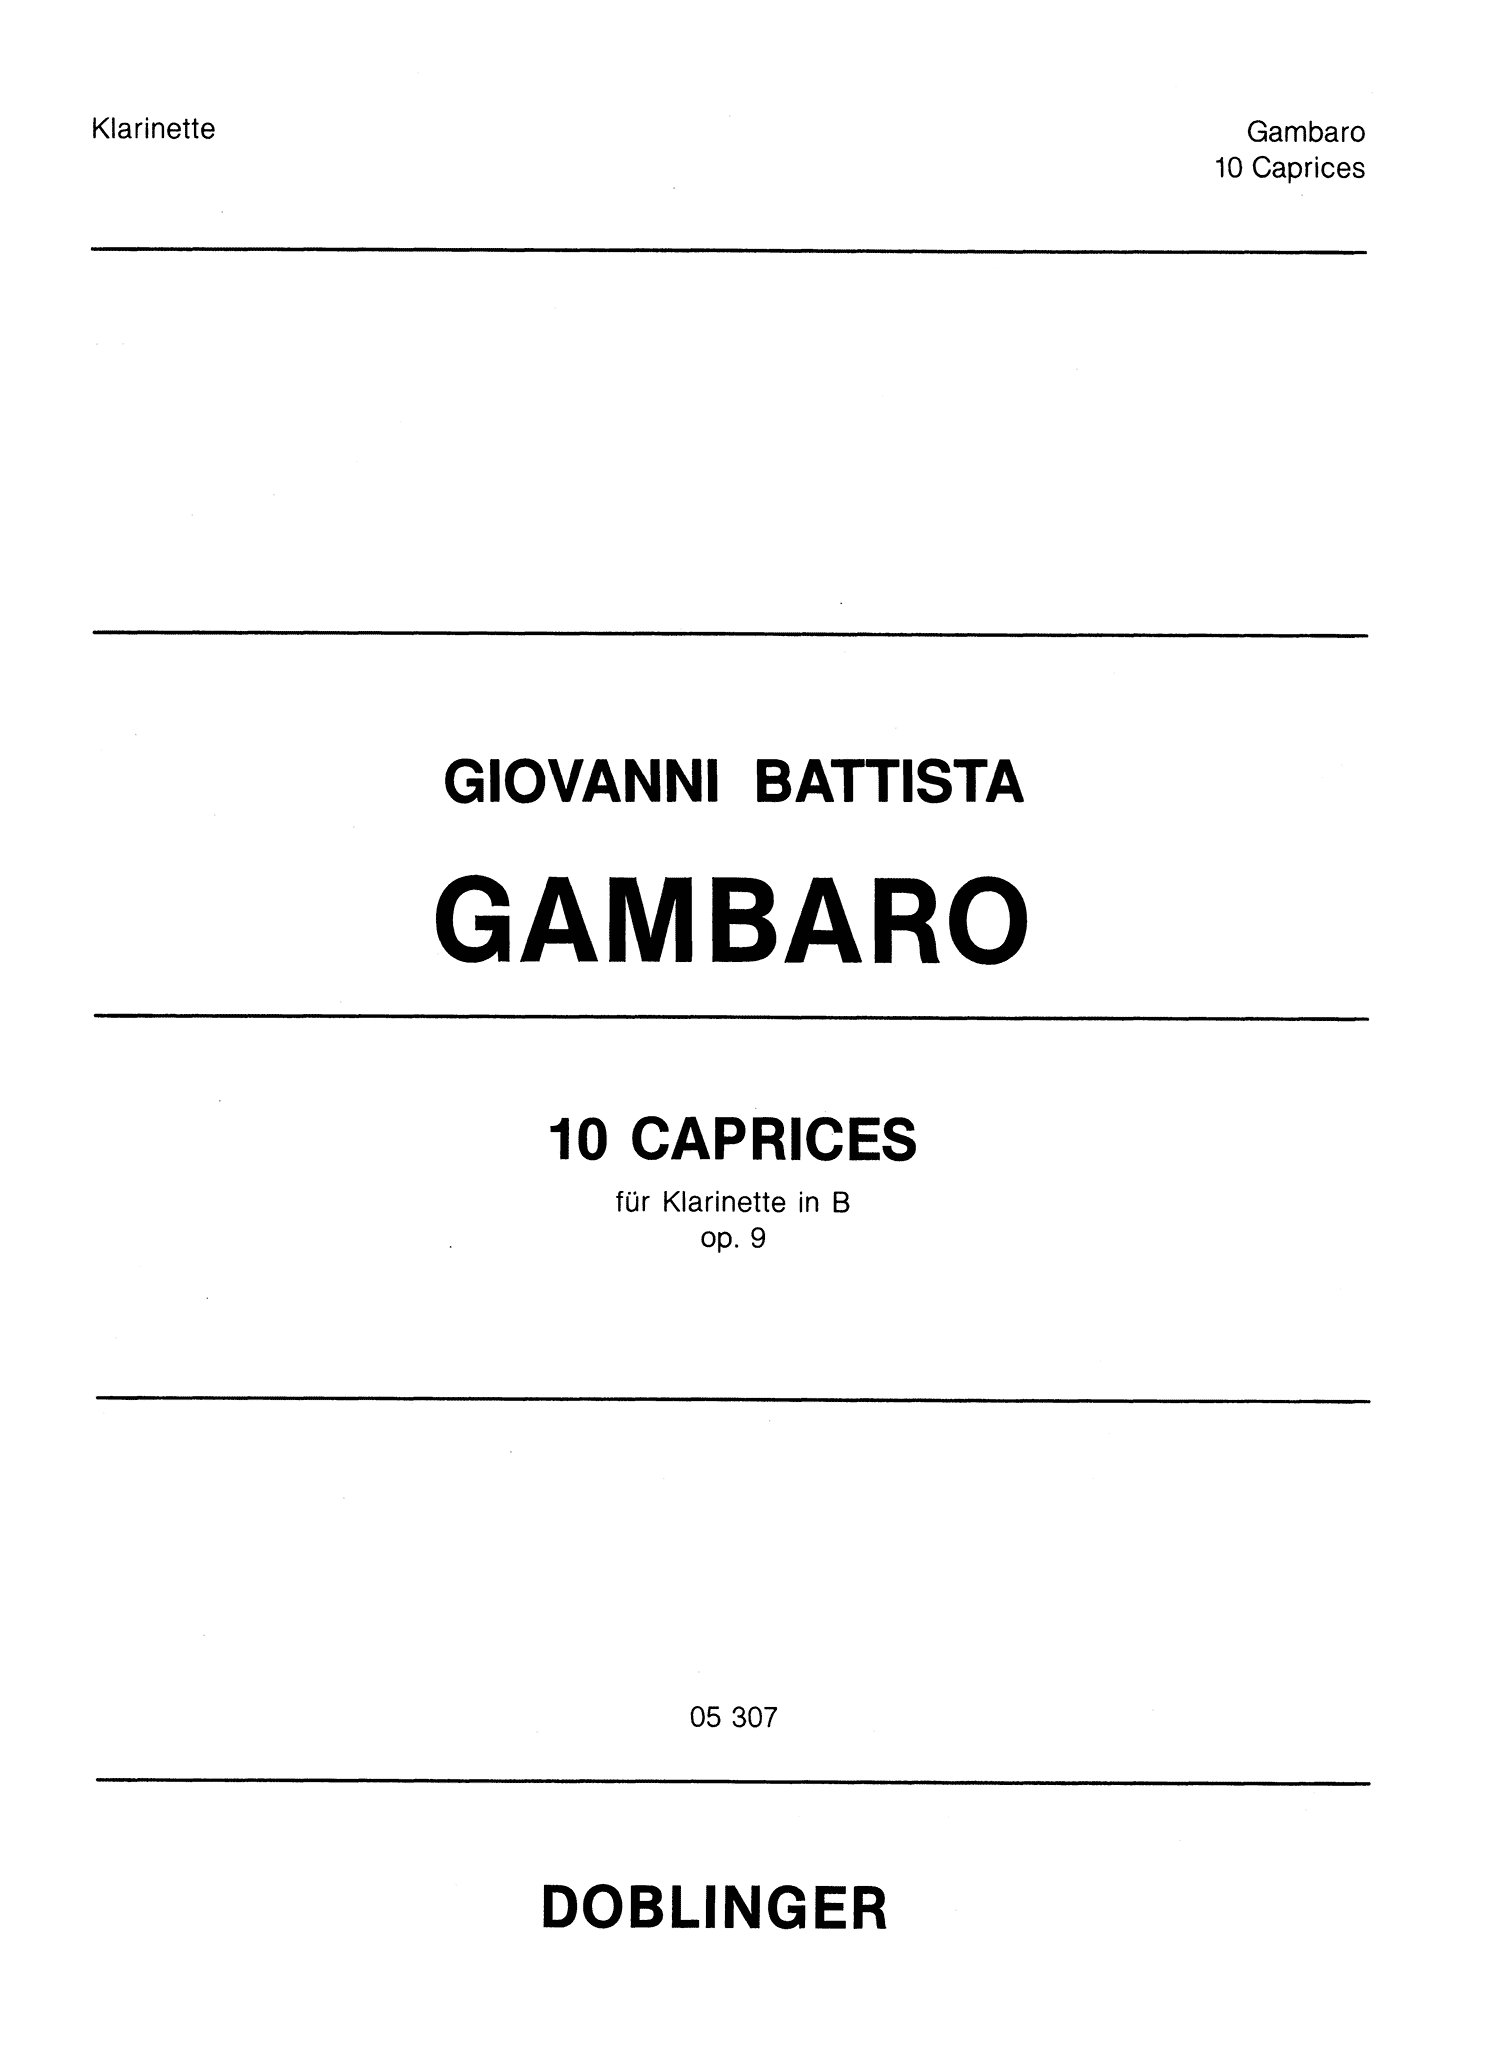 Gambaro 10 Caprices for Clarinet, Op. 9 Cover